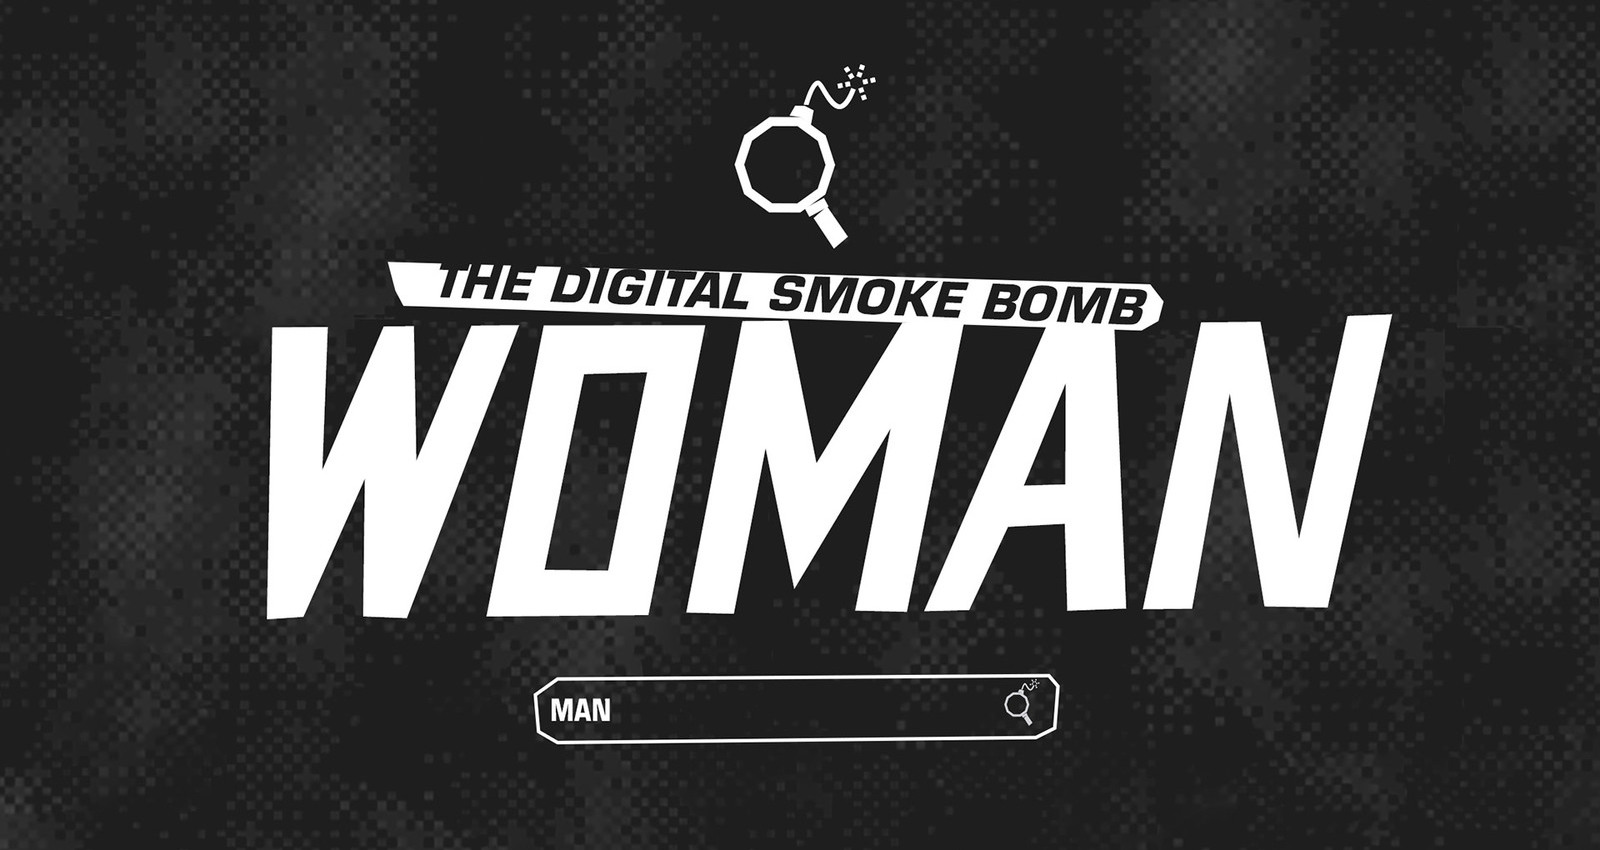 Antonymous - the Digital Smoke Bomb